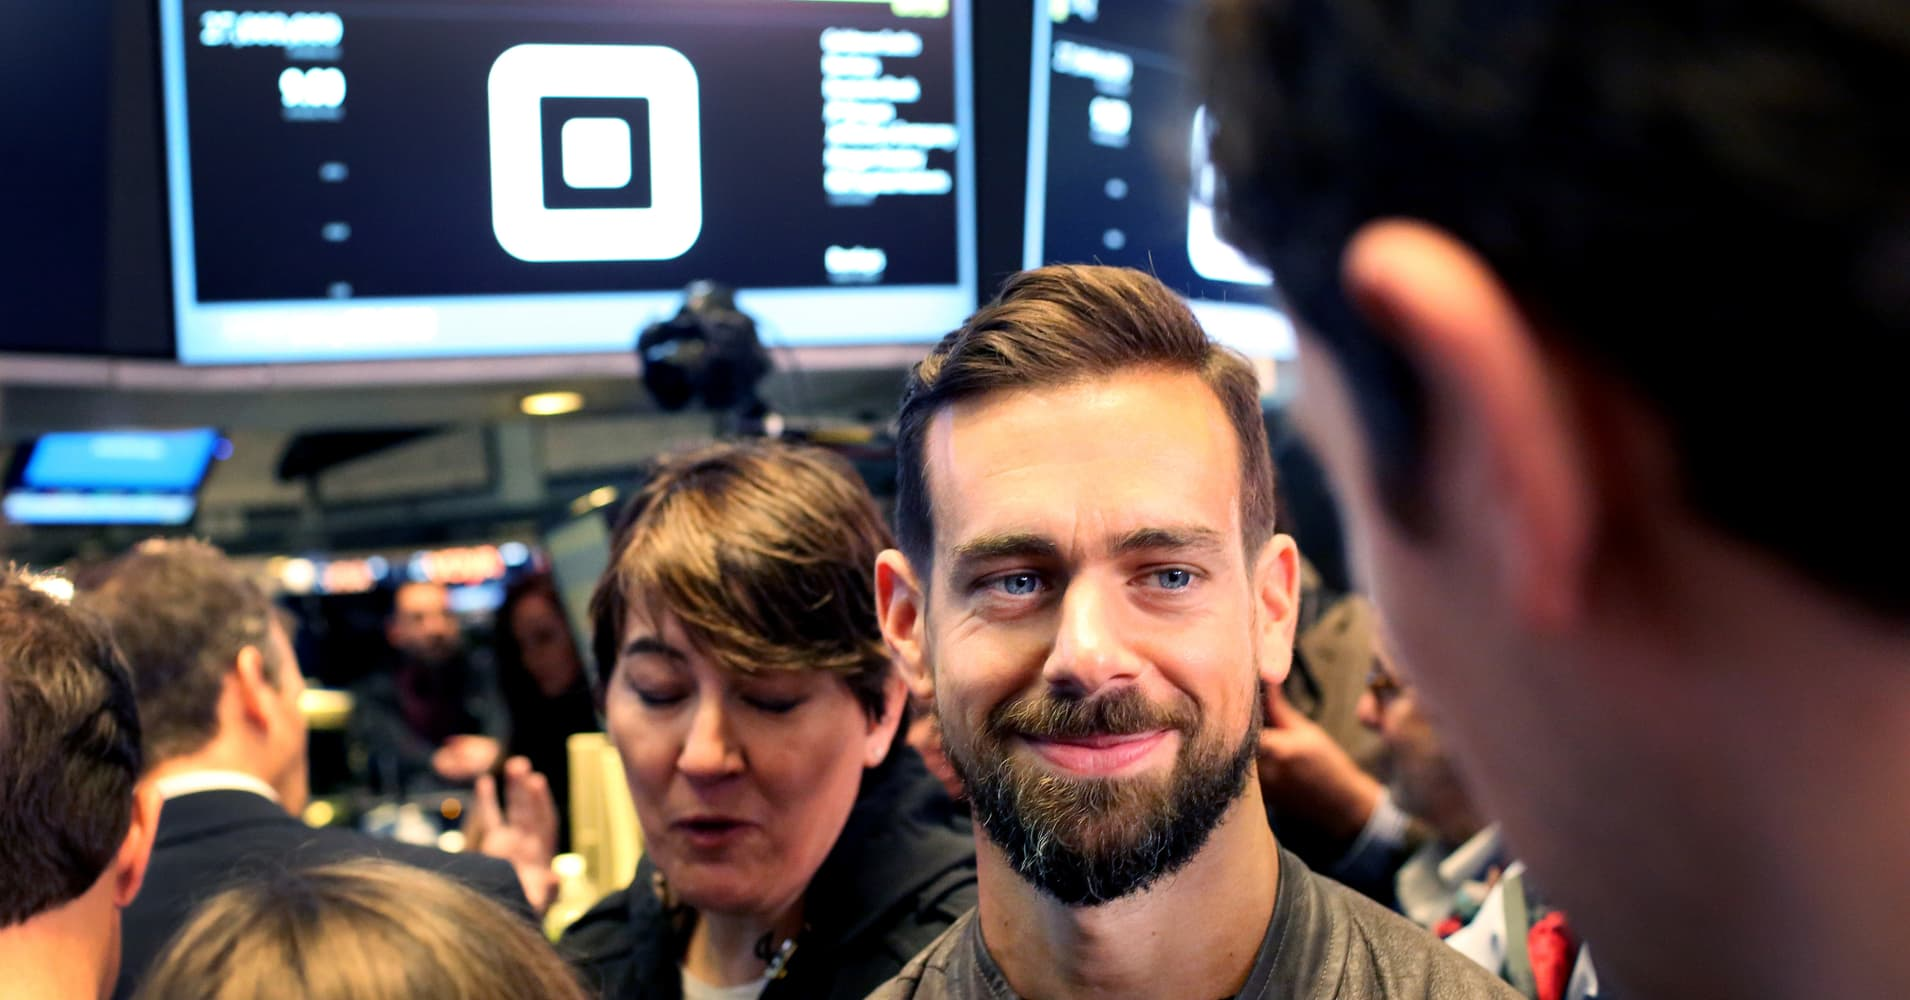 'Allow yourself to fail in public:' Read what Jack Dorsey told Square's CFO as she took another job